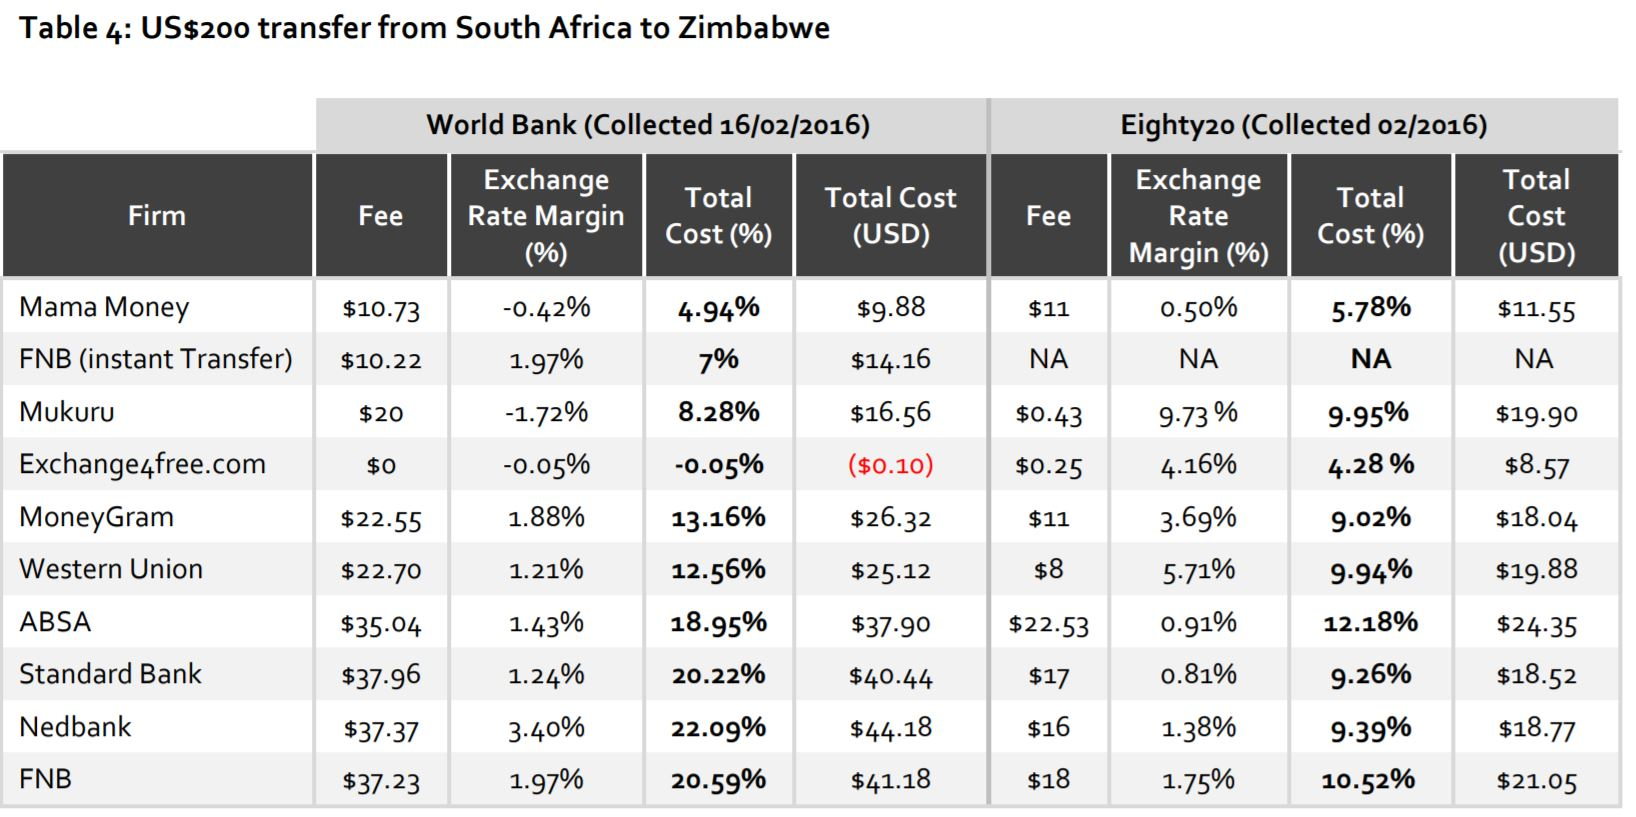 South Africa to Zimbabwe $200 WB data vs. Independent